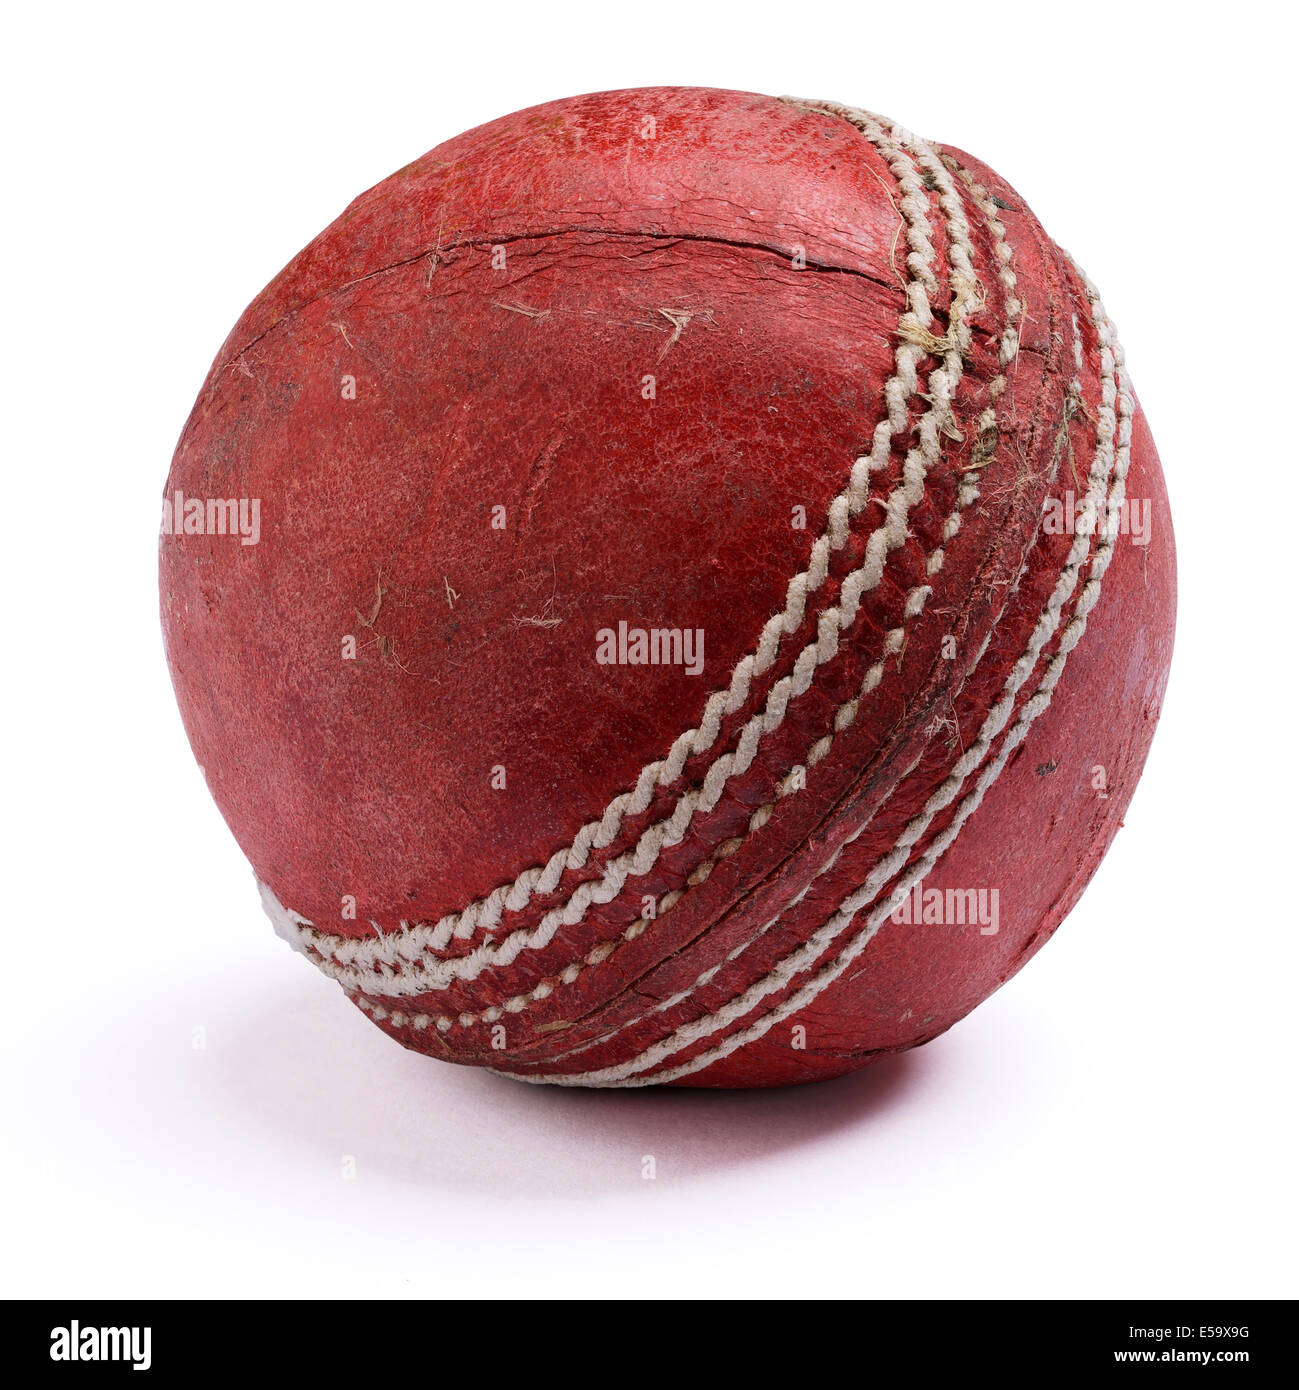 Old worn out red leather cricket ball Stock Photo